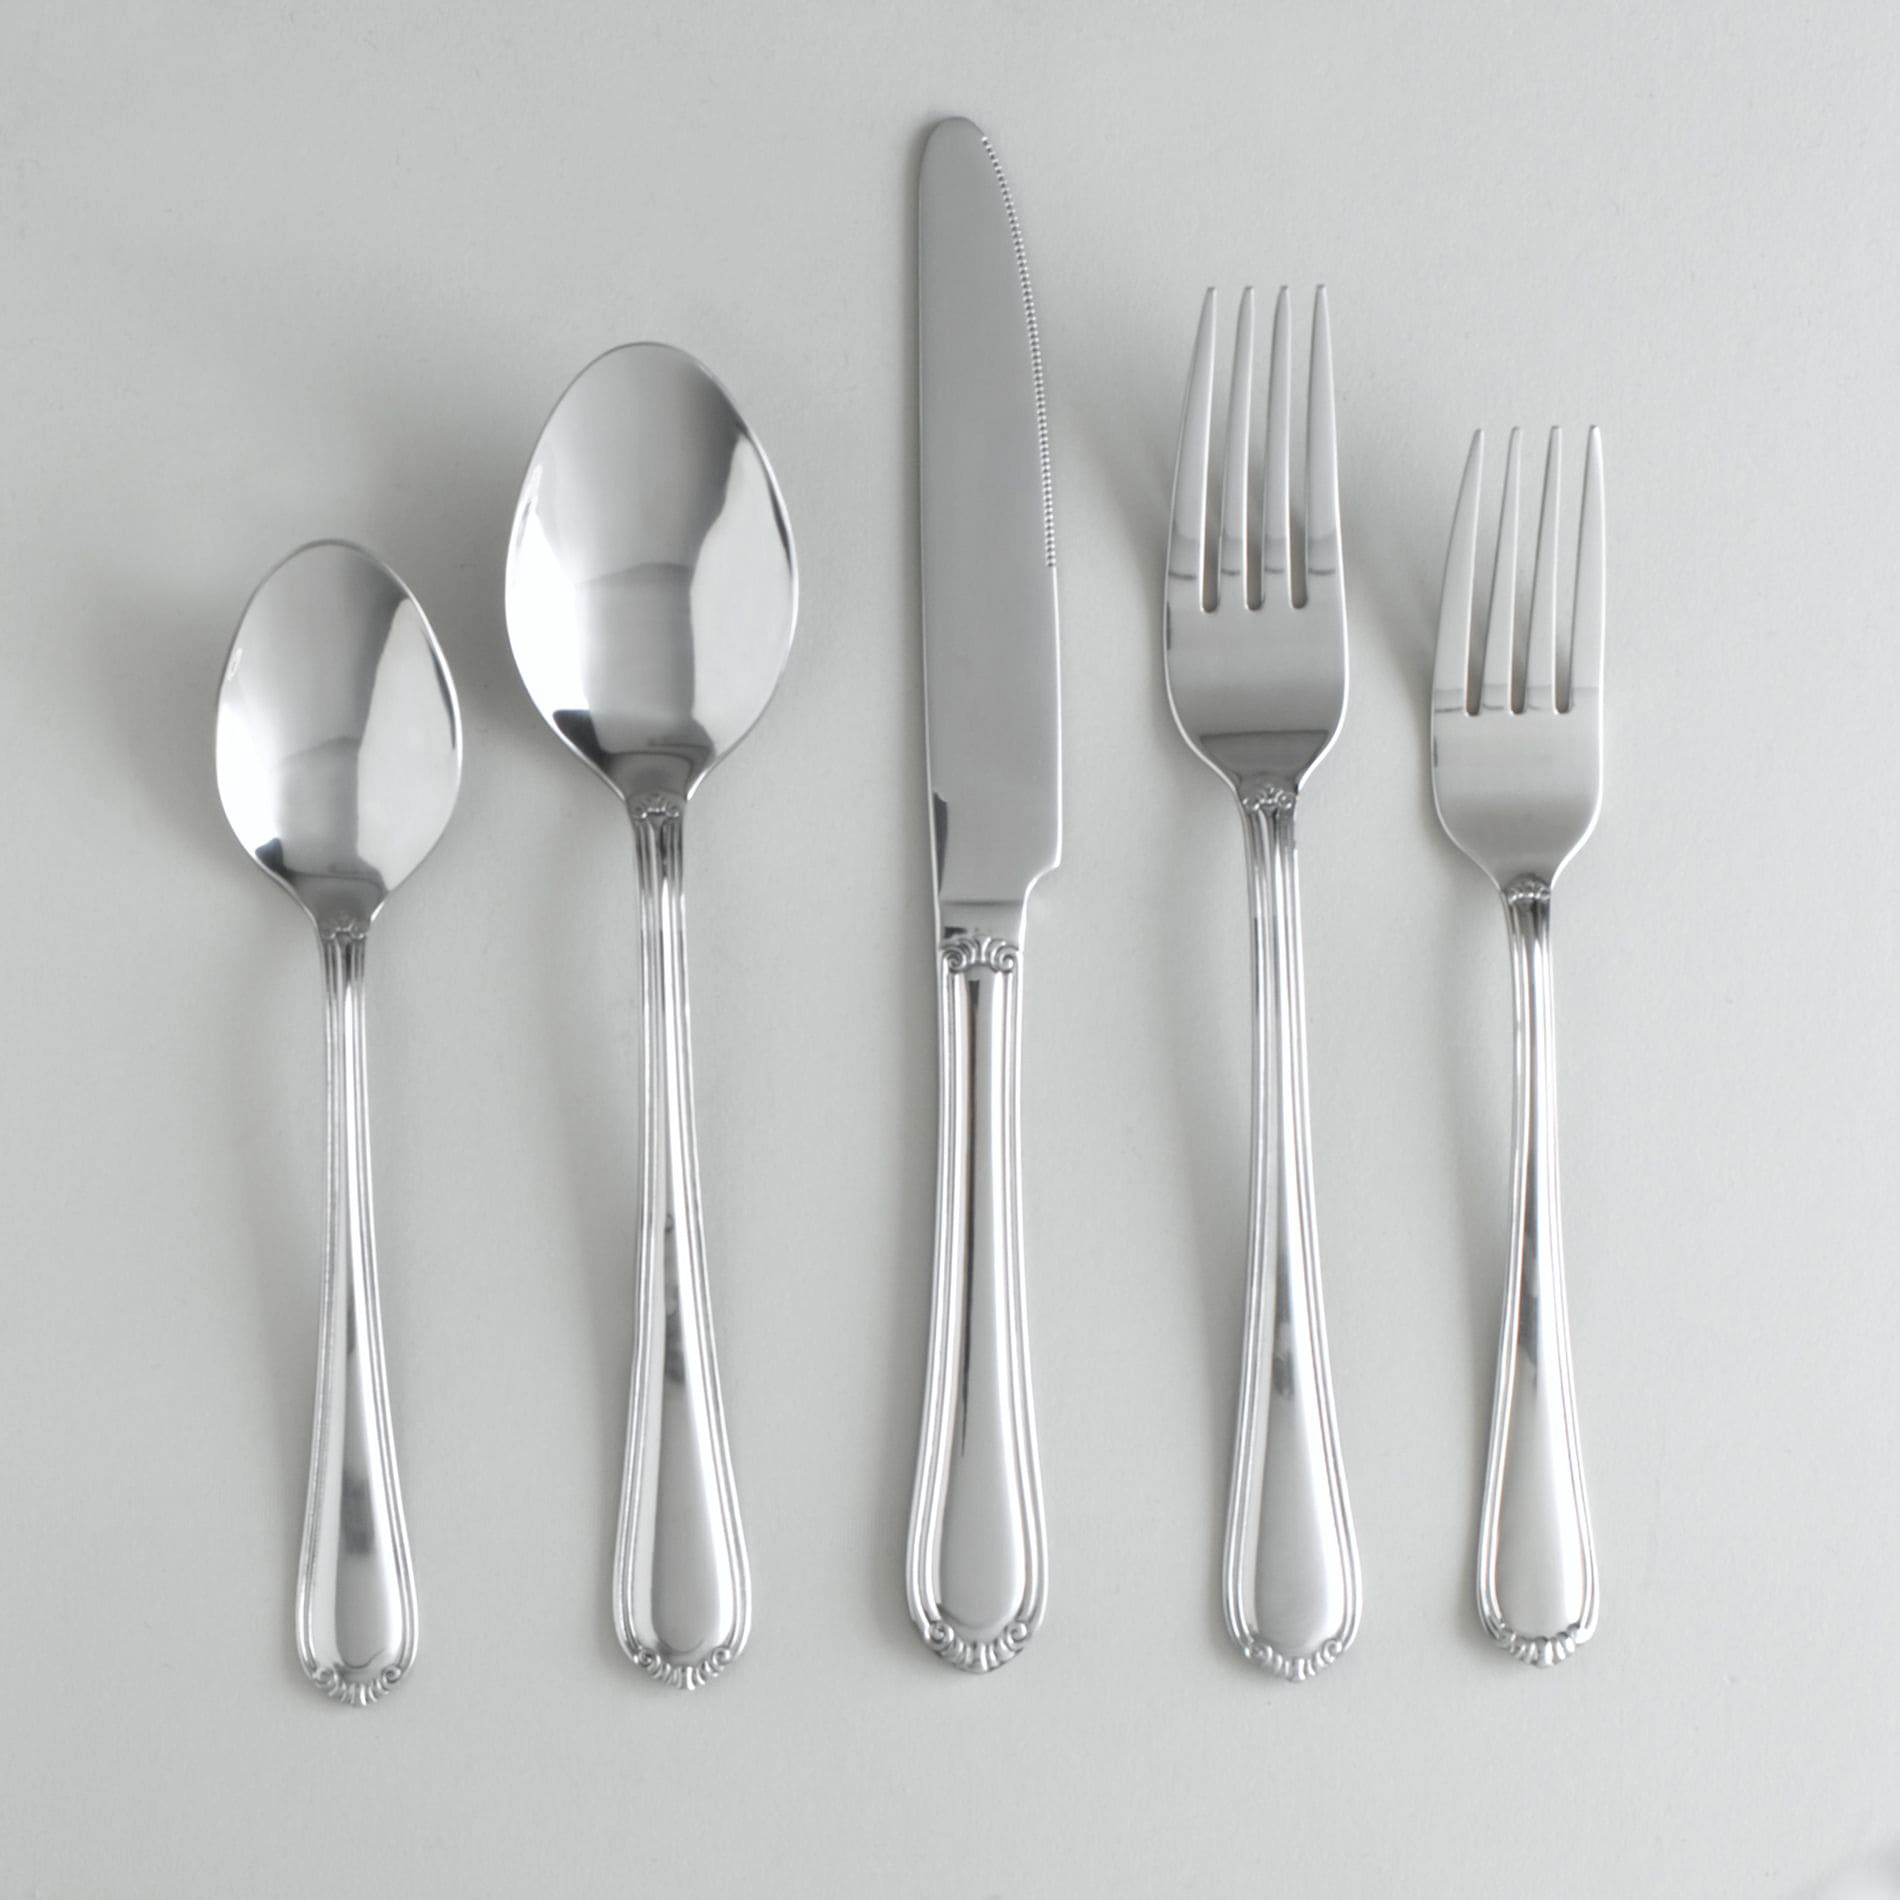 stainless steel cutlery from kmart